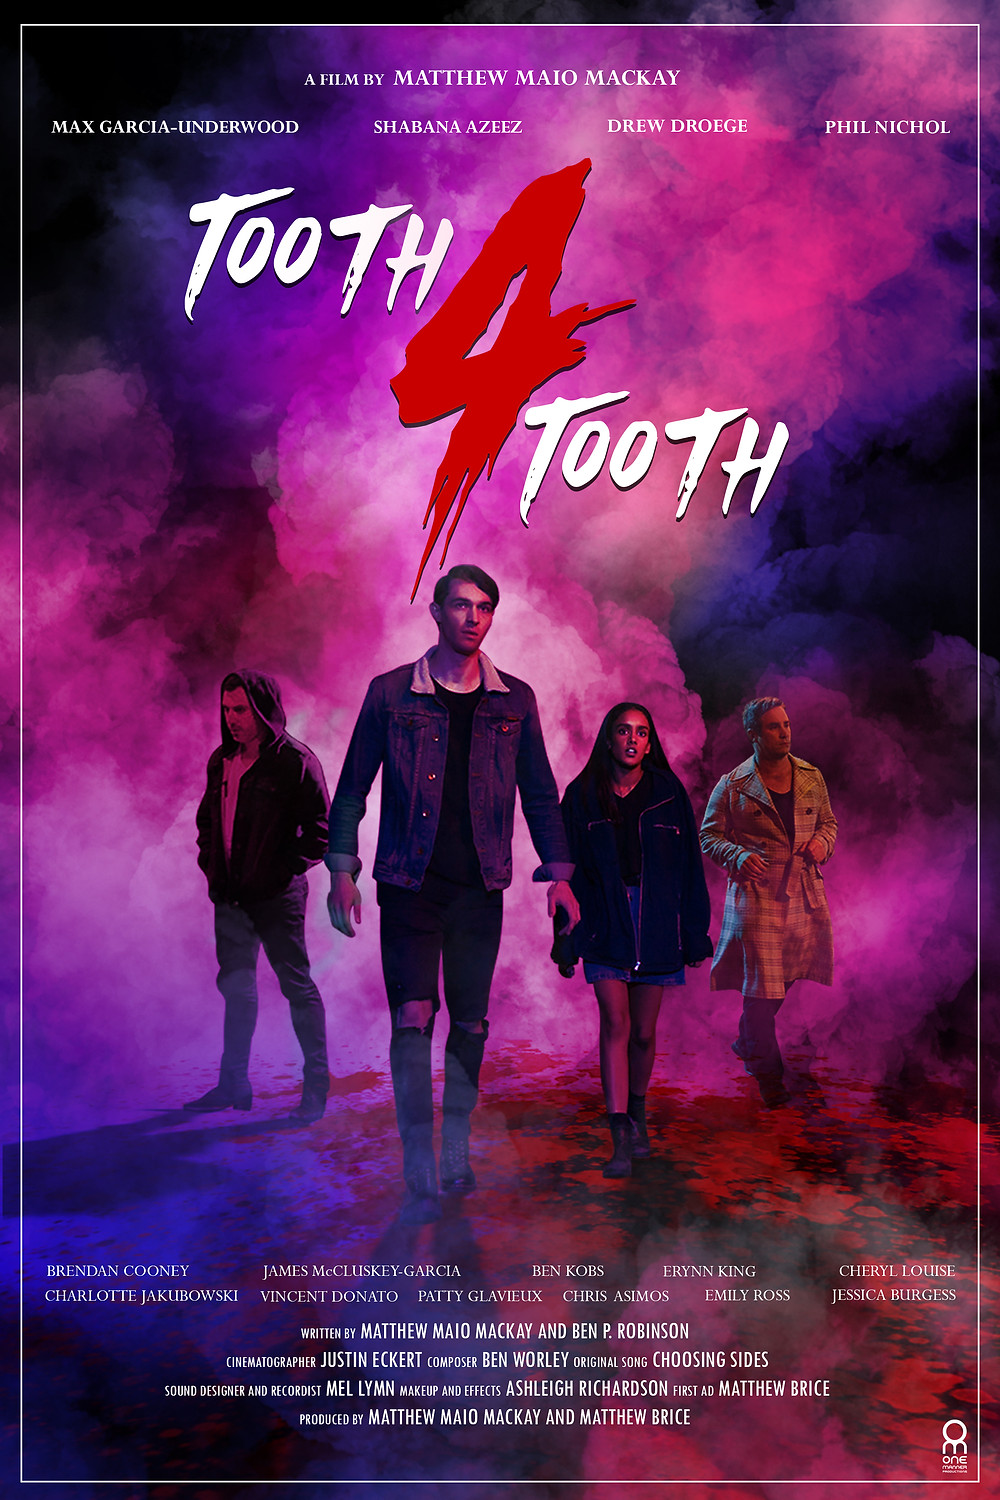 Poster for Tooth 4 Tooth showing protagonists.